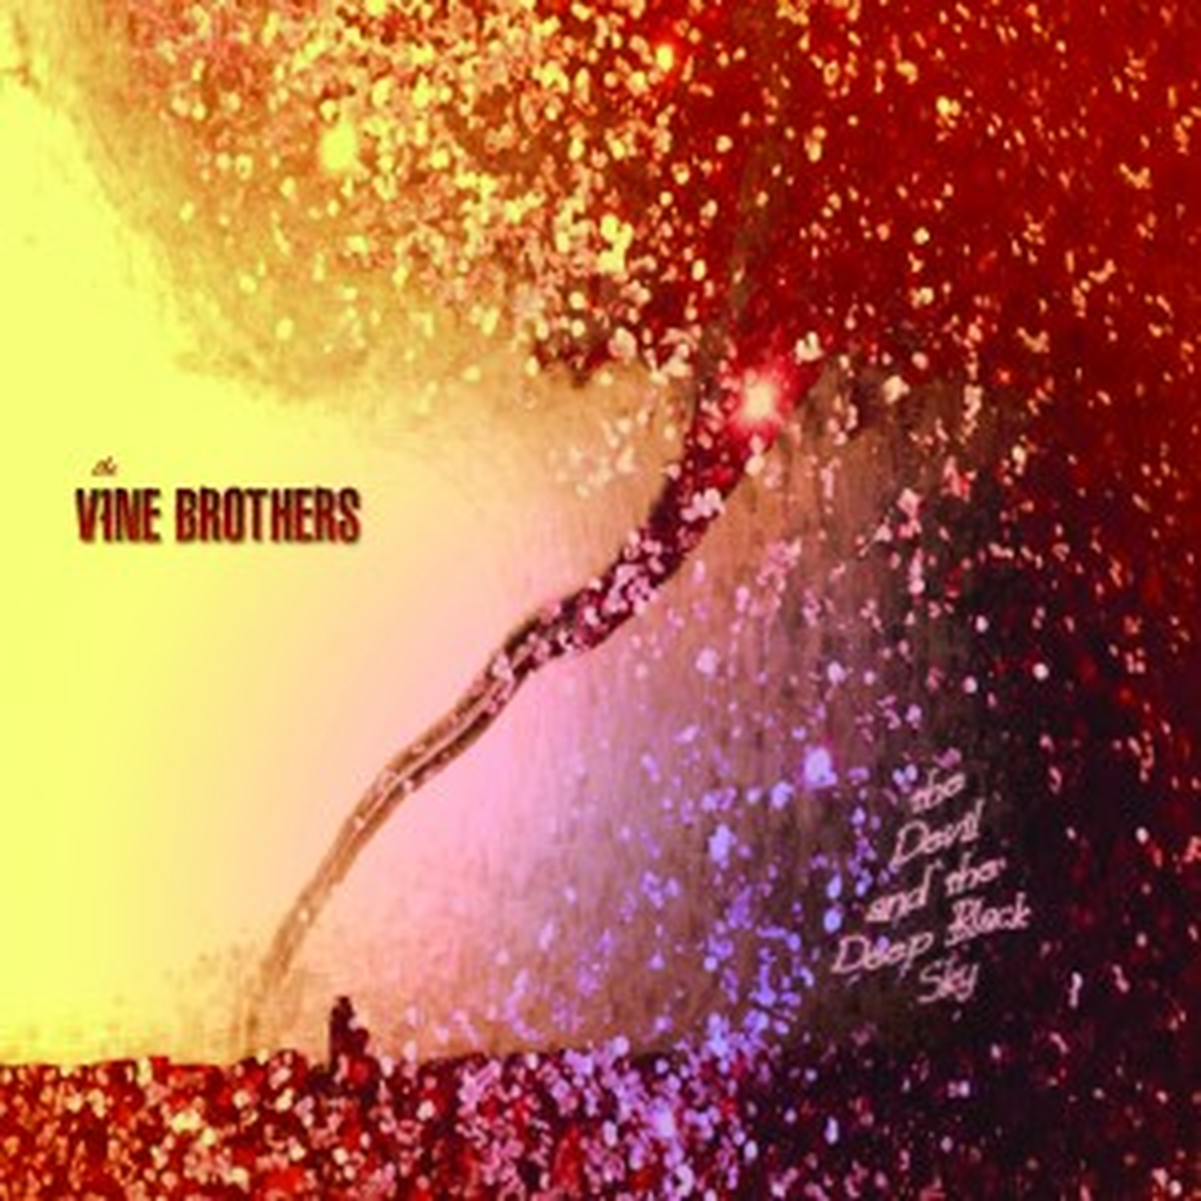 The Vine Brothers